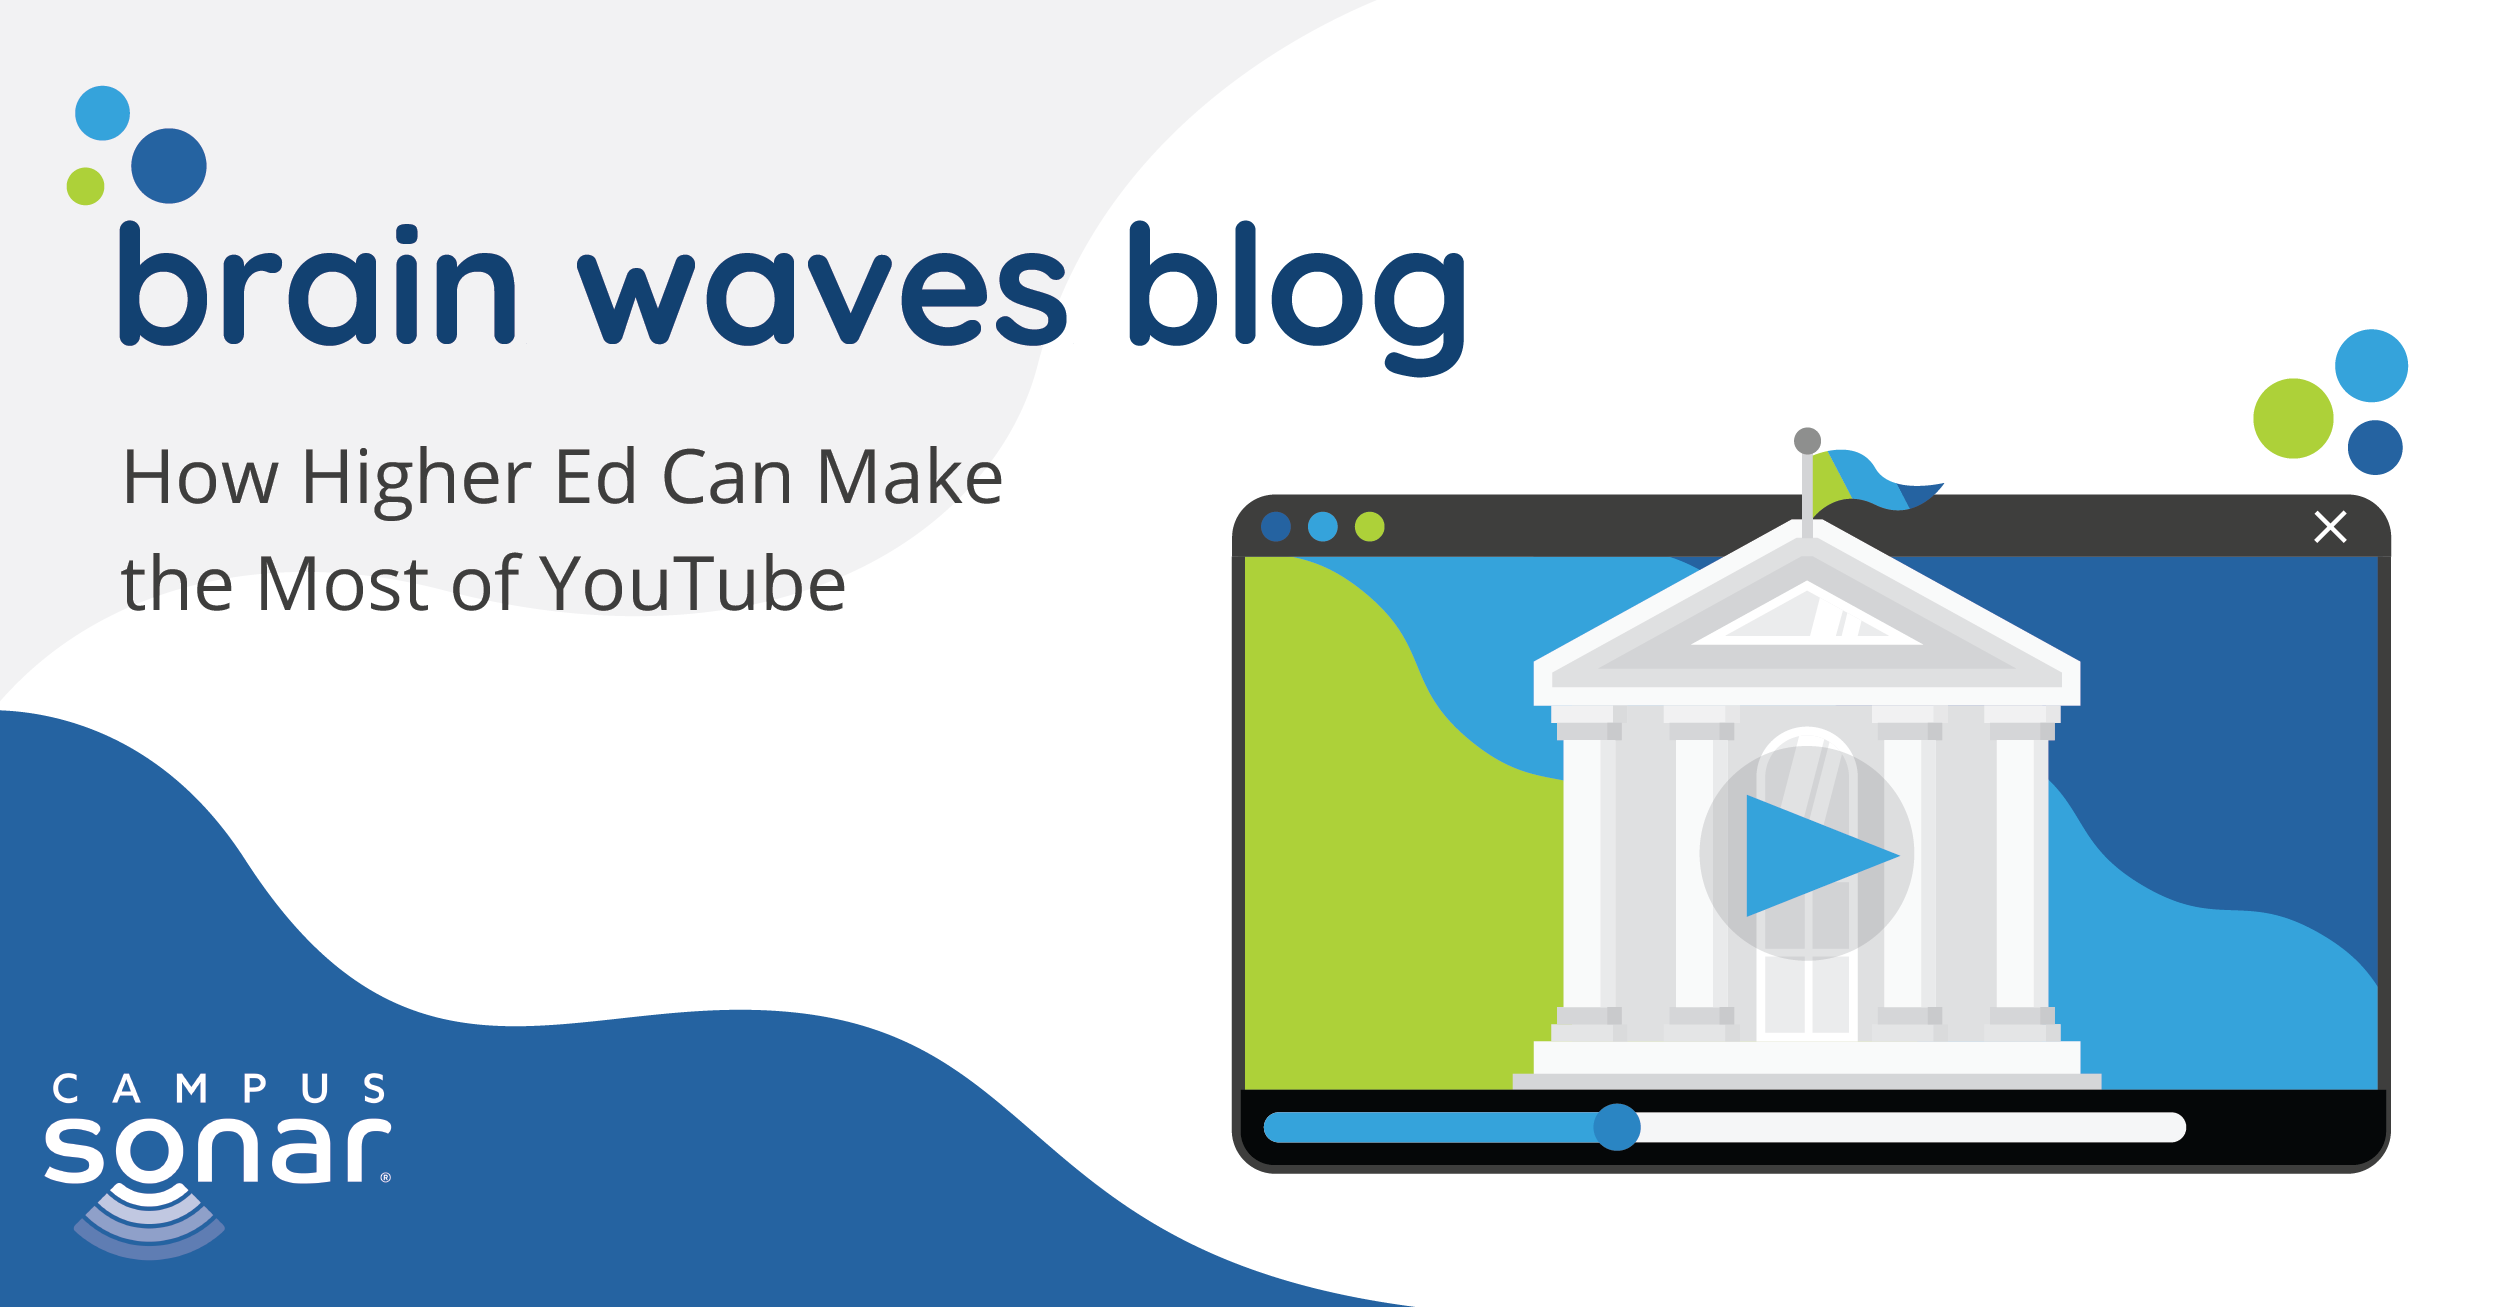 Brain Waves Blog: How Higher Ed Can Make the Most of YouTube